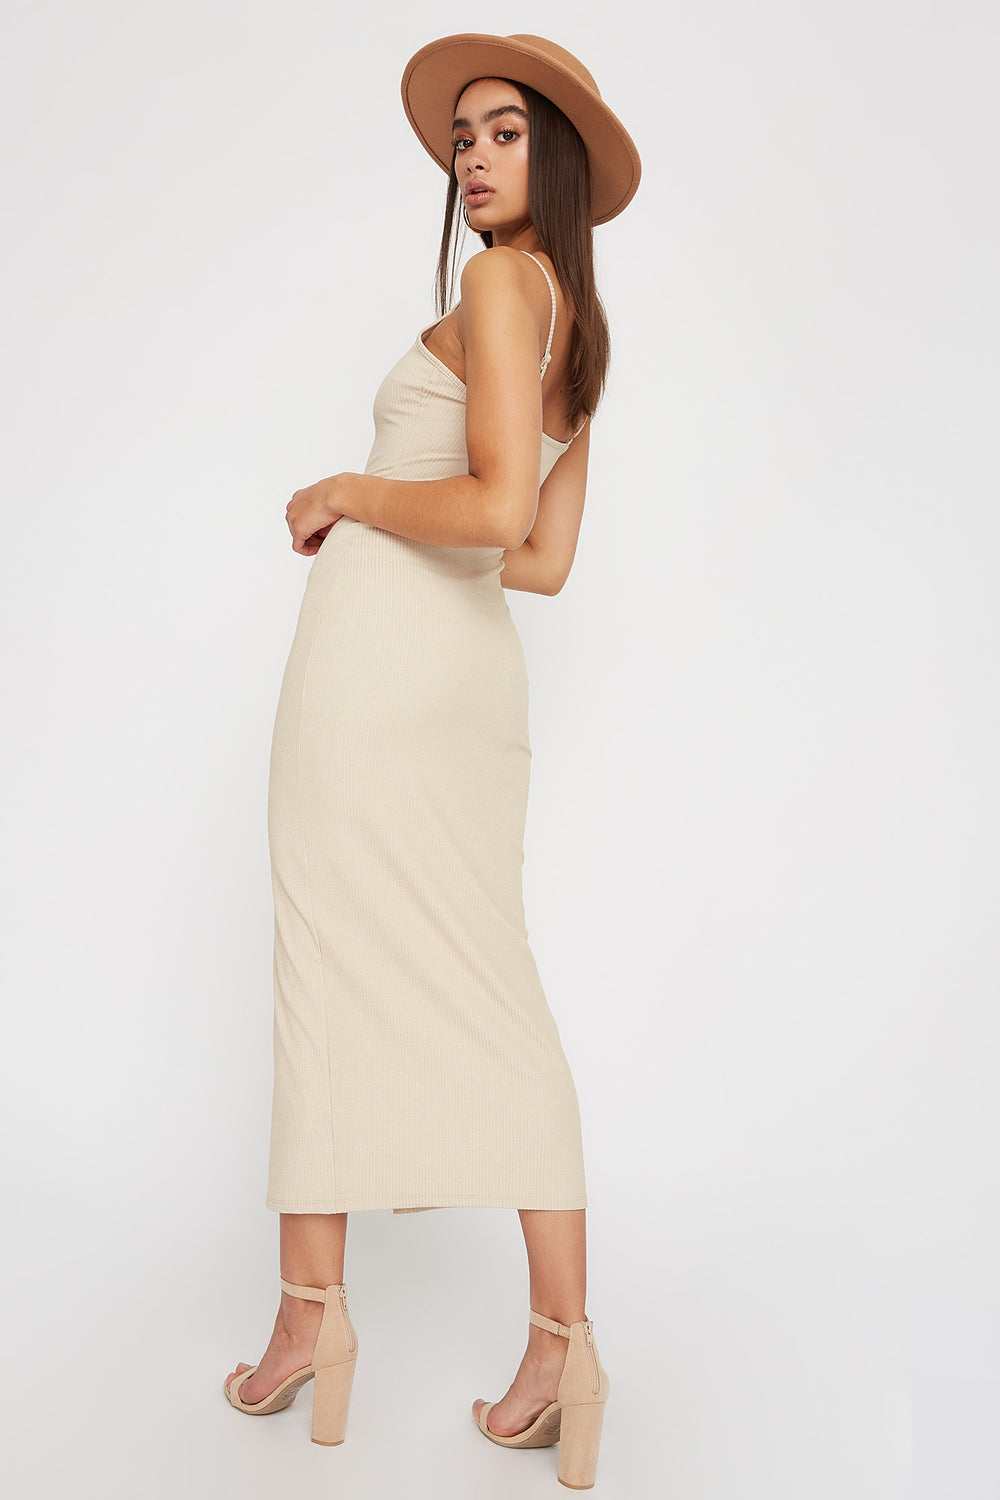 Women Dresses Ribbed Button Cut Out Sleeveless Midi Dress Oatmeal